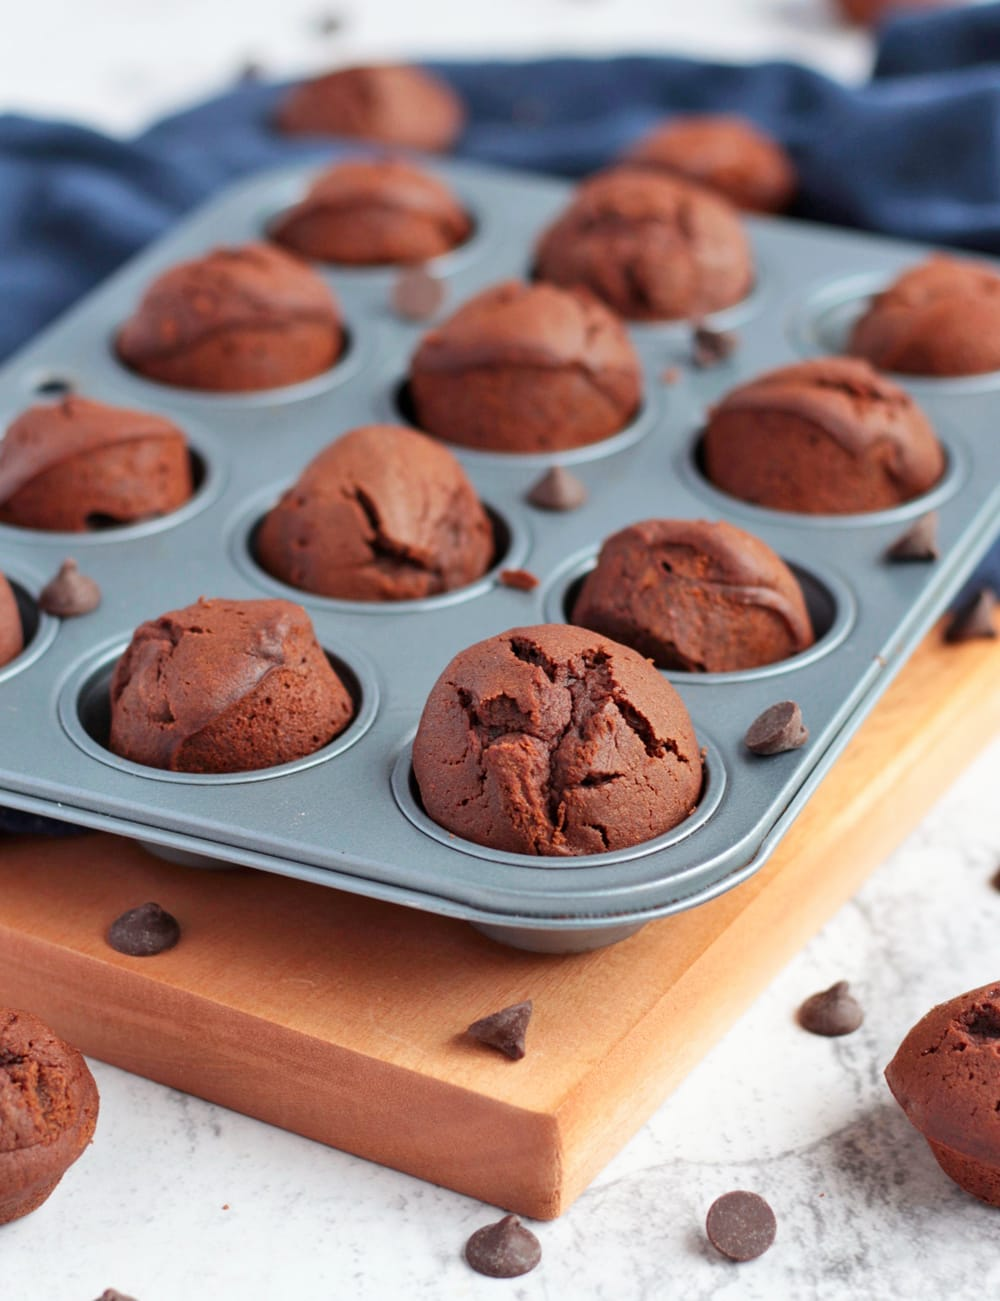 Mini Chocolate Muffins in the muffin tray